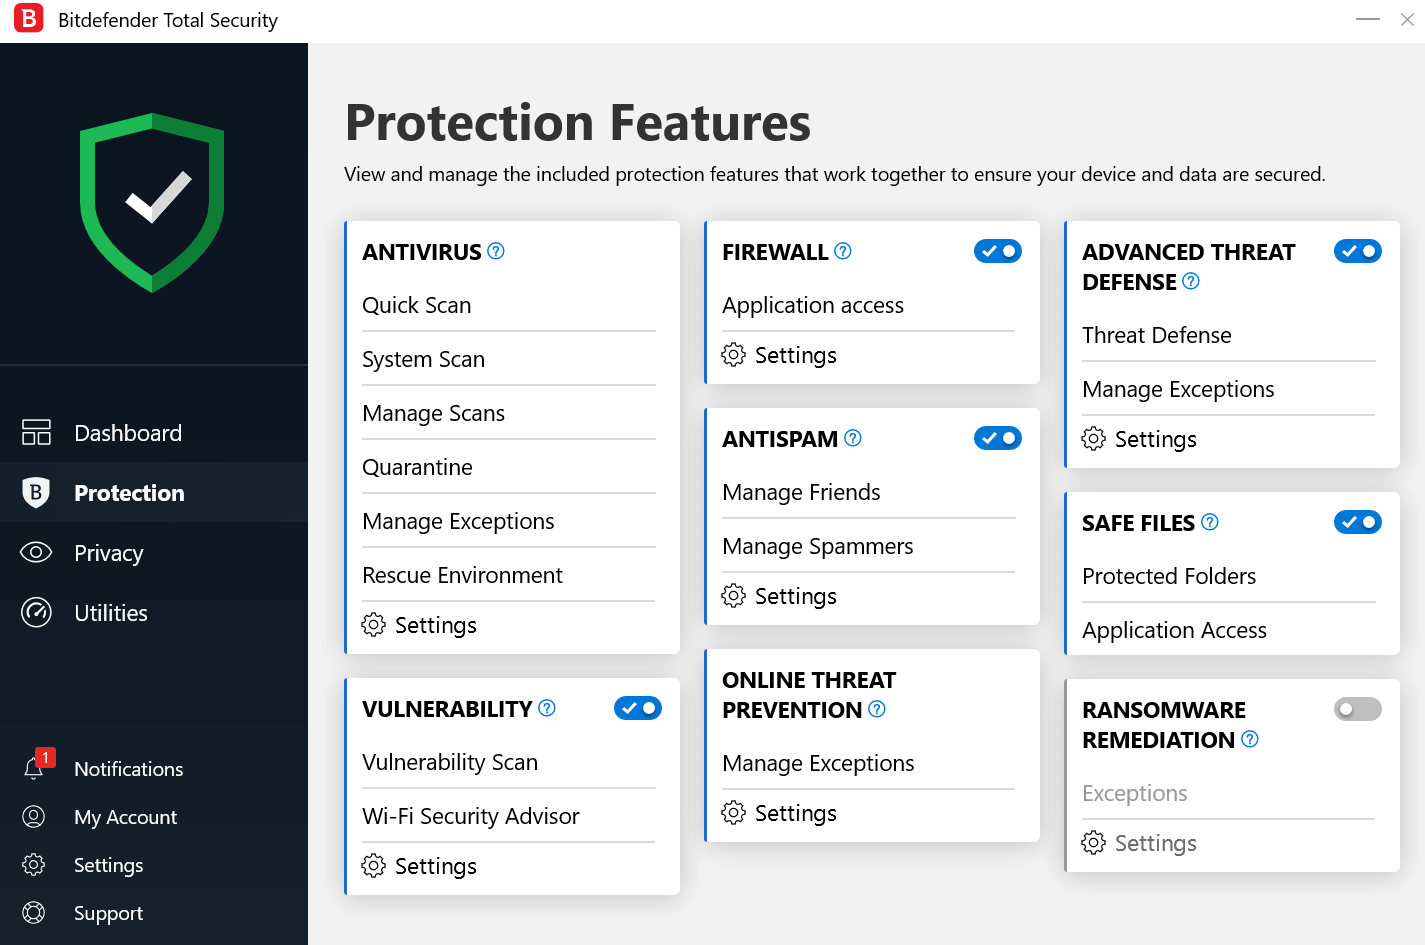 bitdefender antivirus protection features